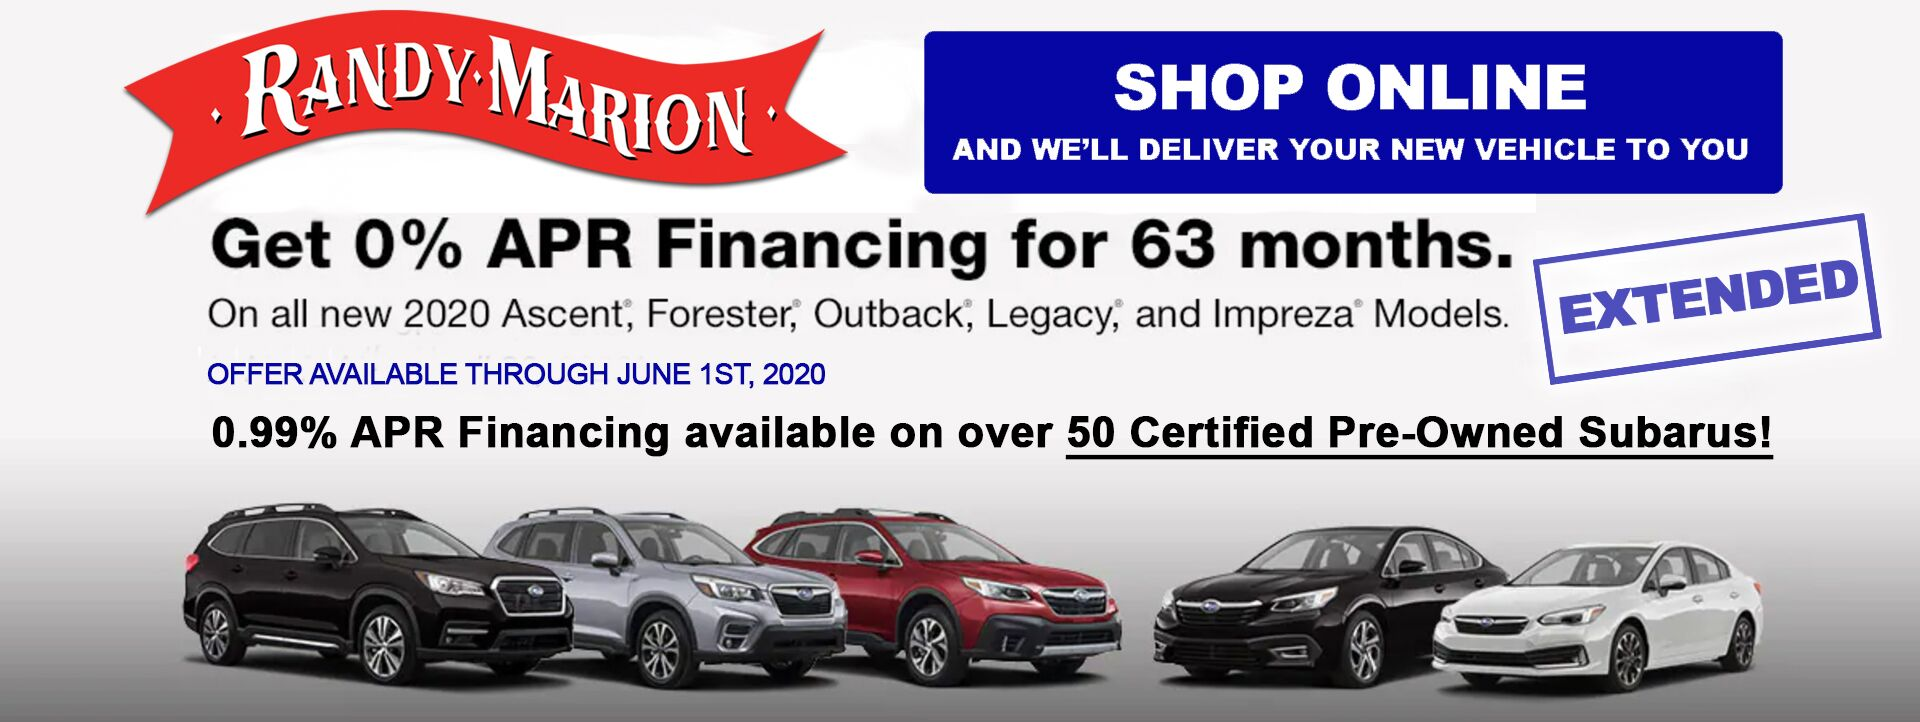 Randy Marion Subaru March Offers